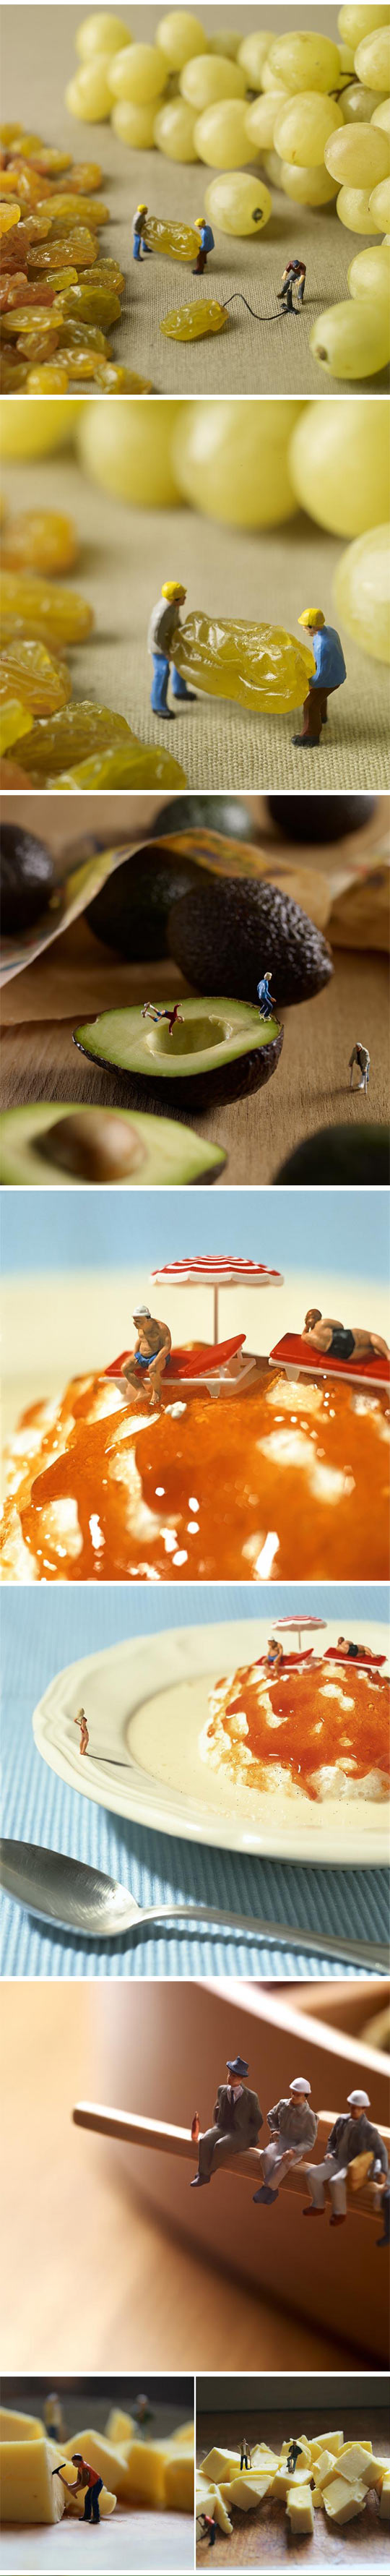 cool-tiny-doll-food-photography